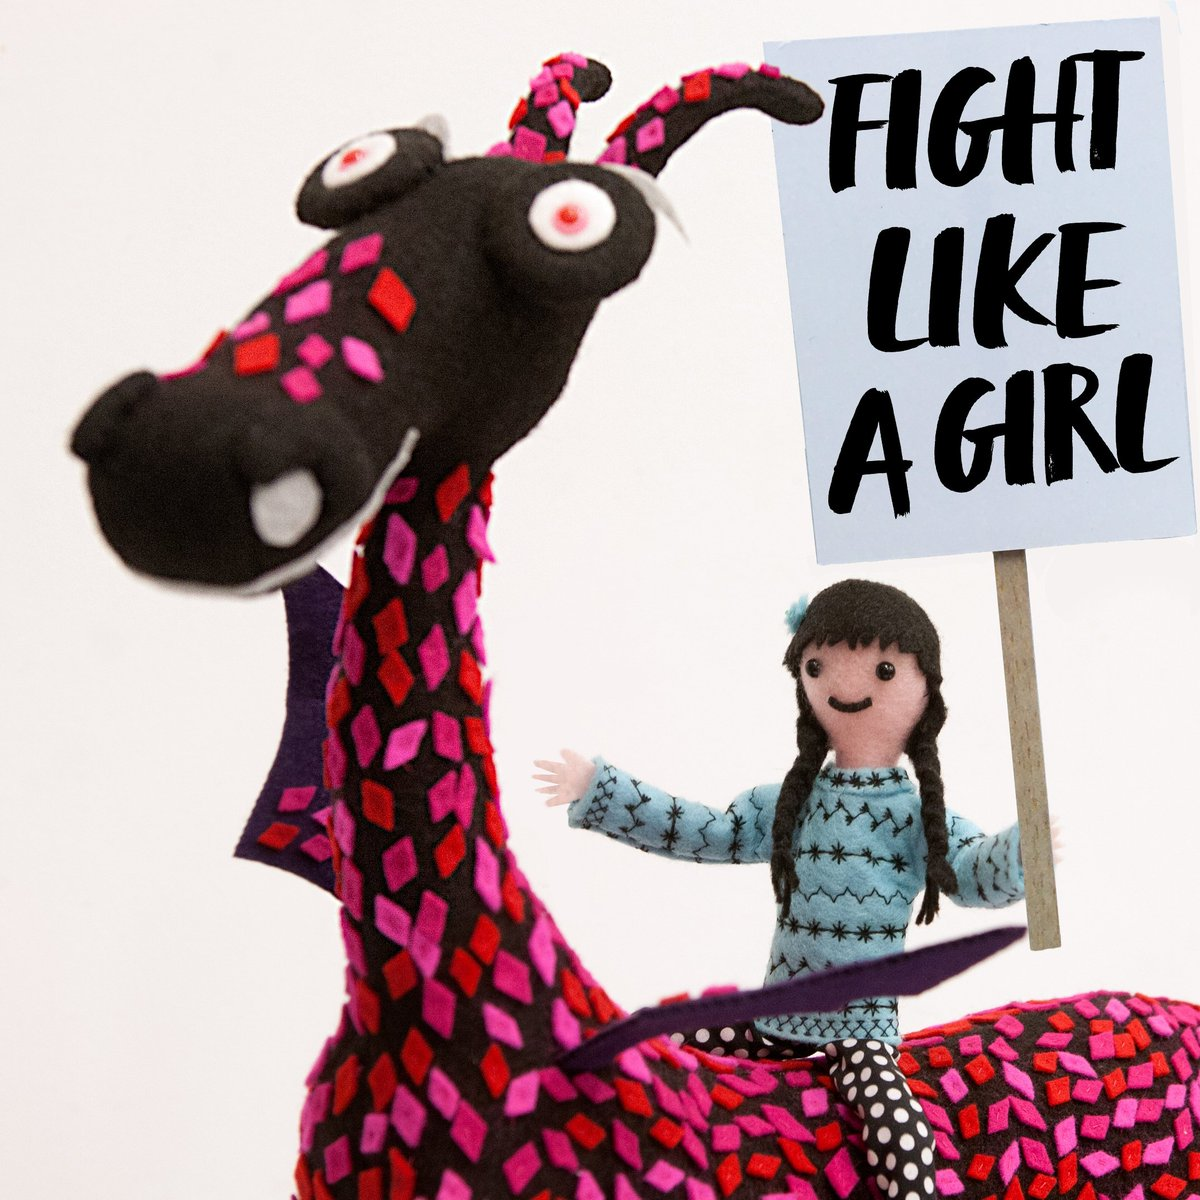 Jill says 'Fight Like a Girl!' #womansmarchLondon #womansmarch @womensmarchlon https://t.co/BAPPYppjtn